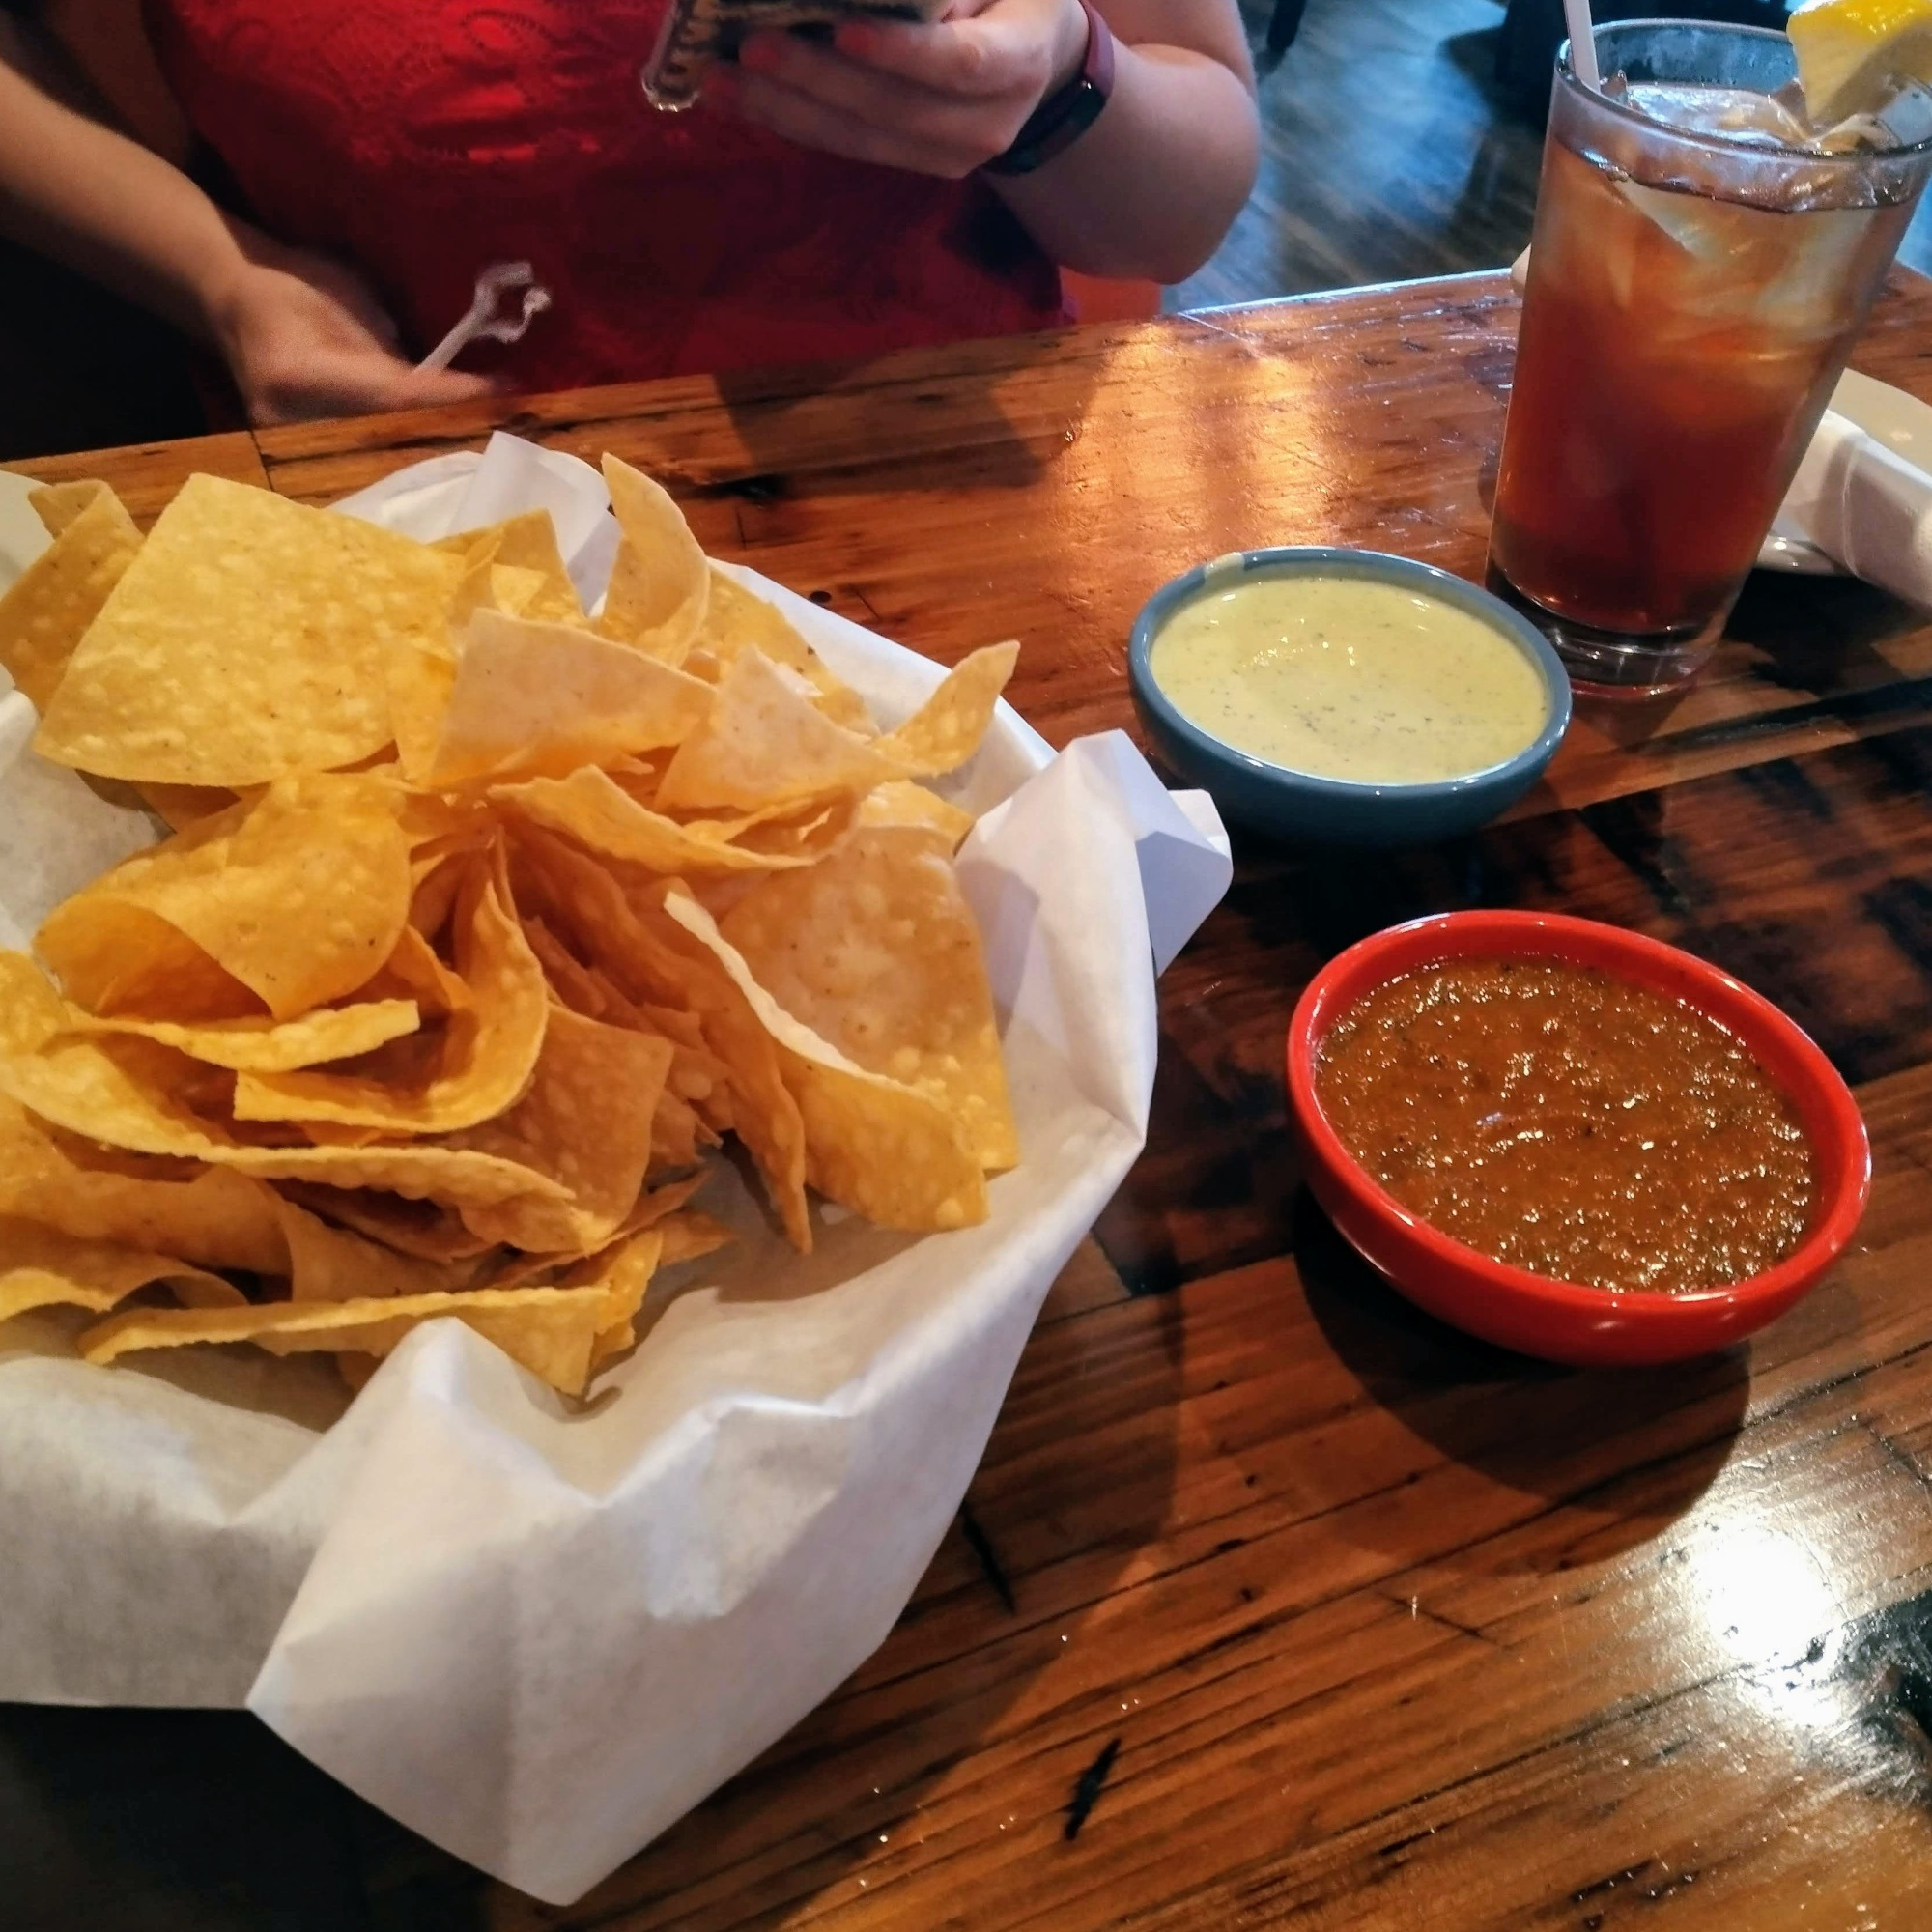 Chips-and-salsa-and-green-sauce-made-from-cilantro-sauce-from-taquilos-with-sweet-tea